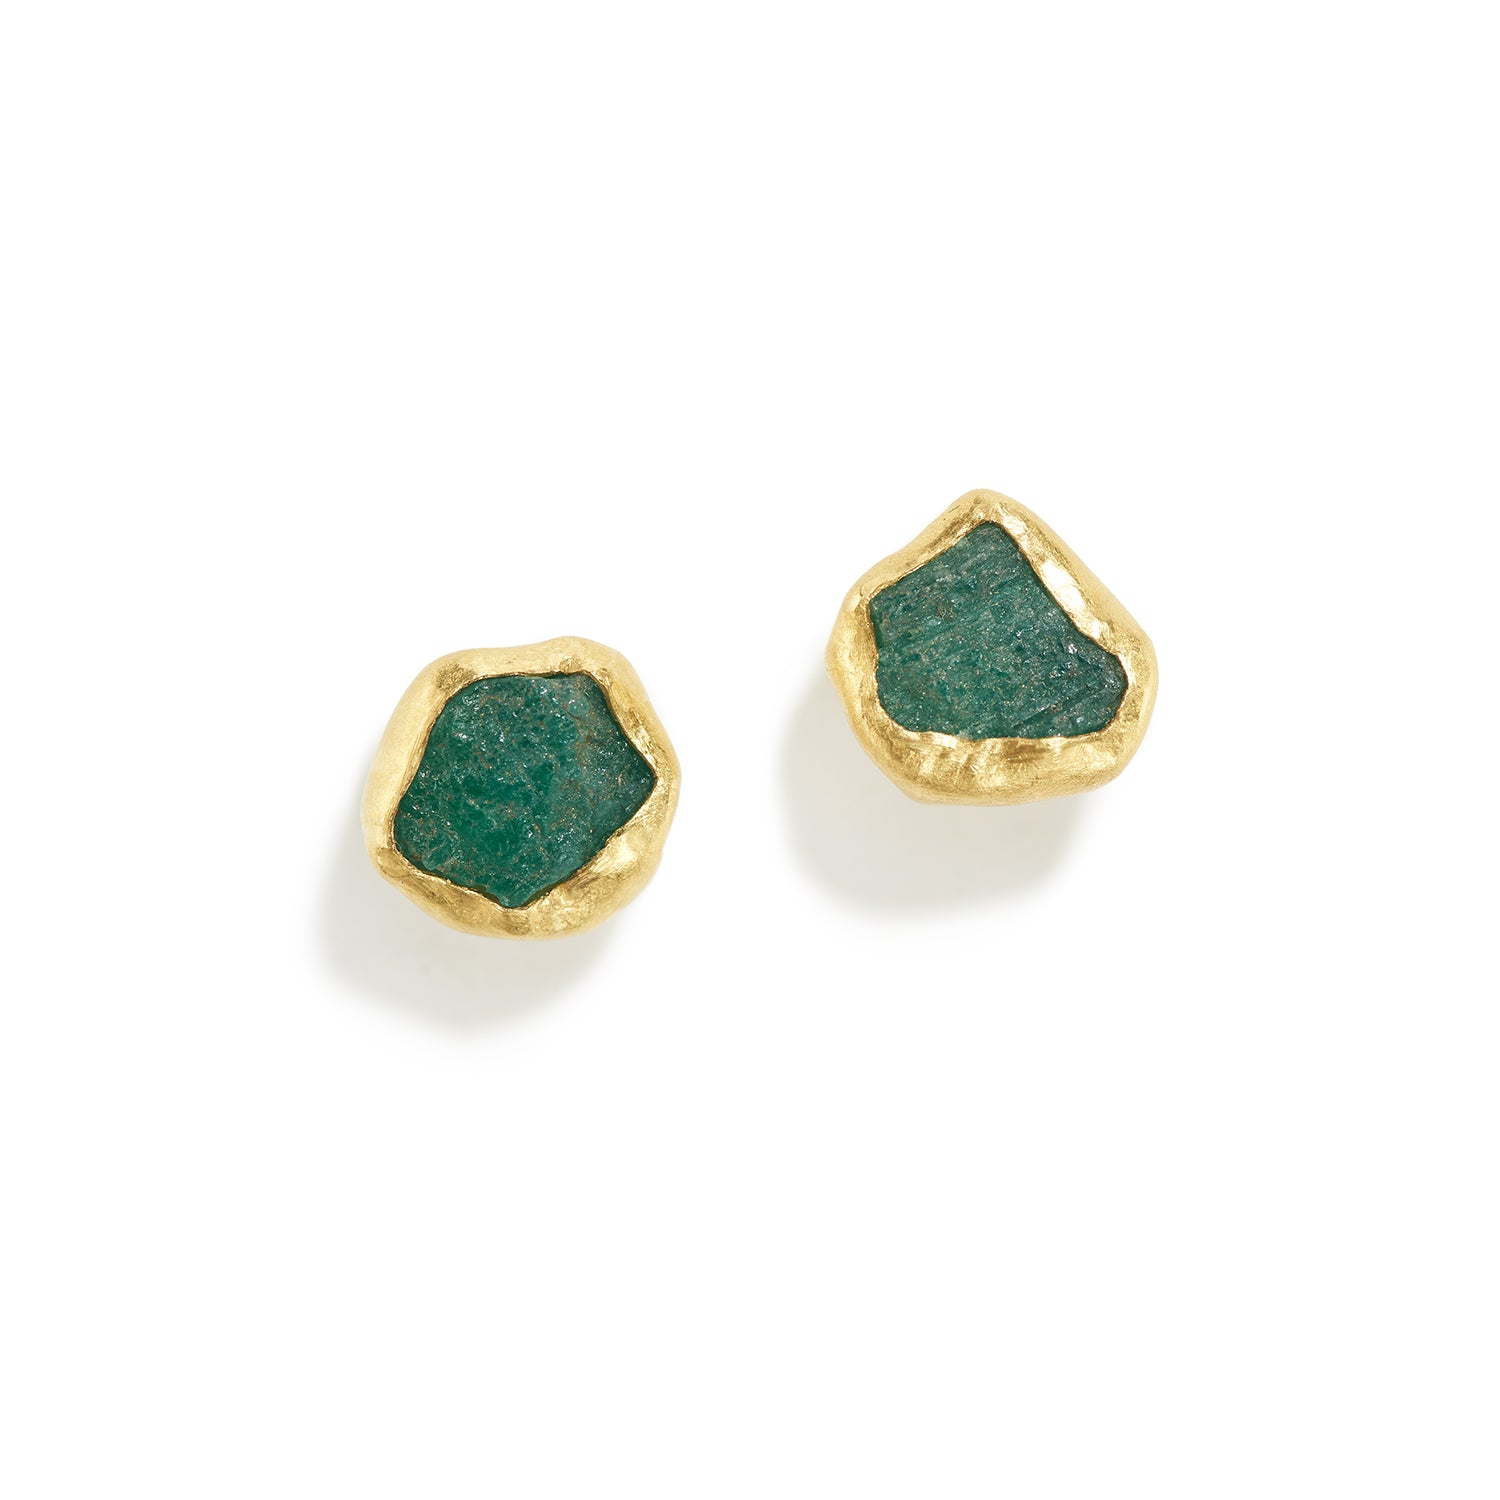 Rough Emerald Stud Earrings